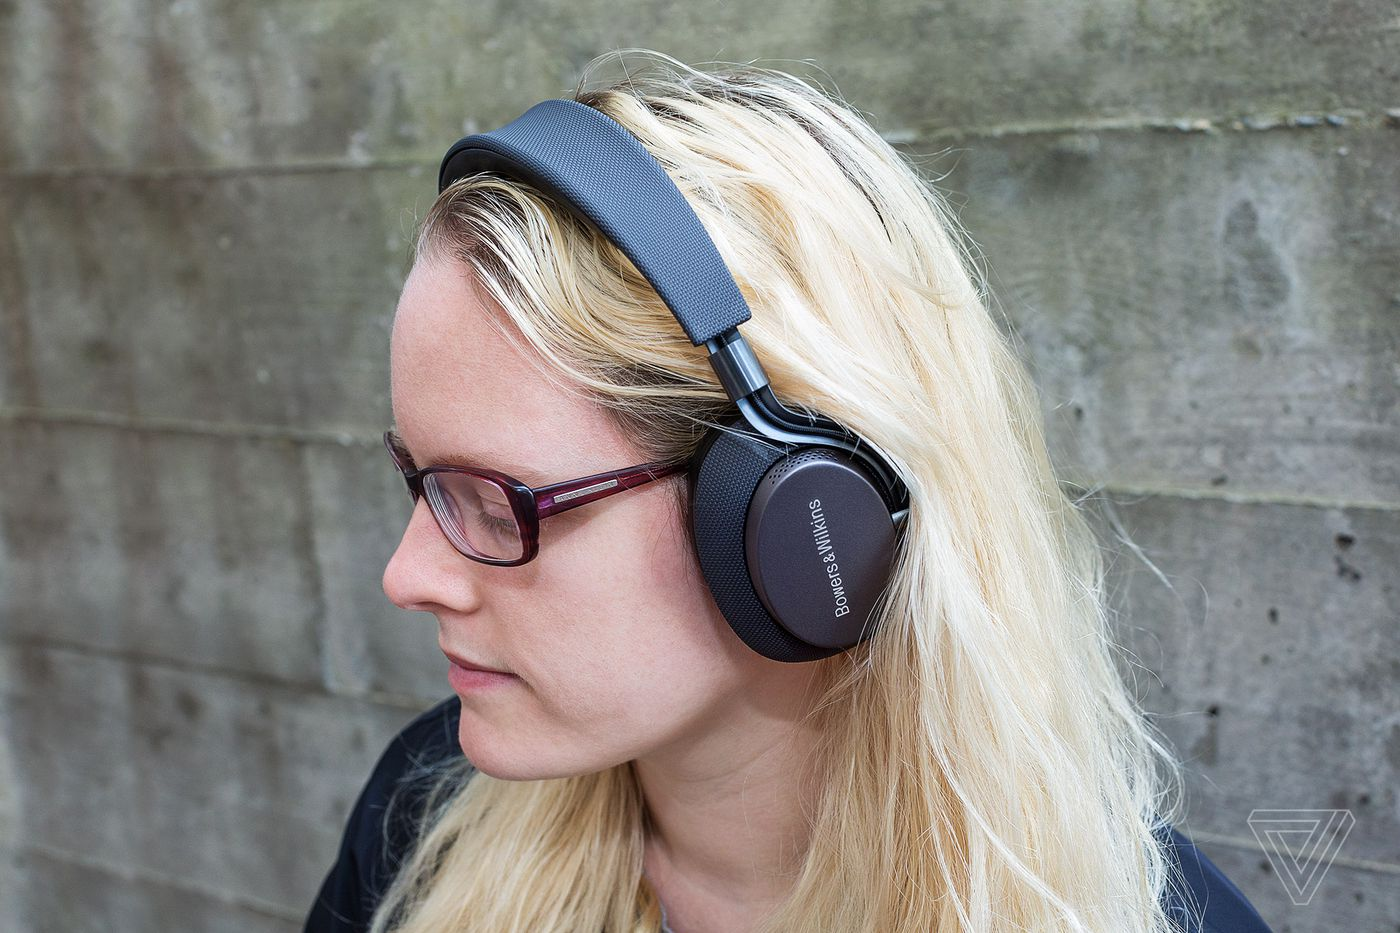 Bower wilkins px5 review